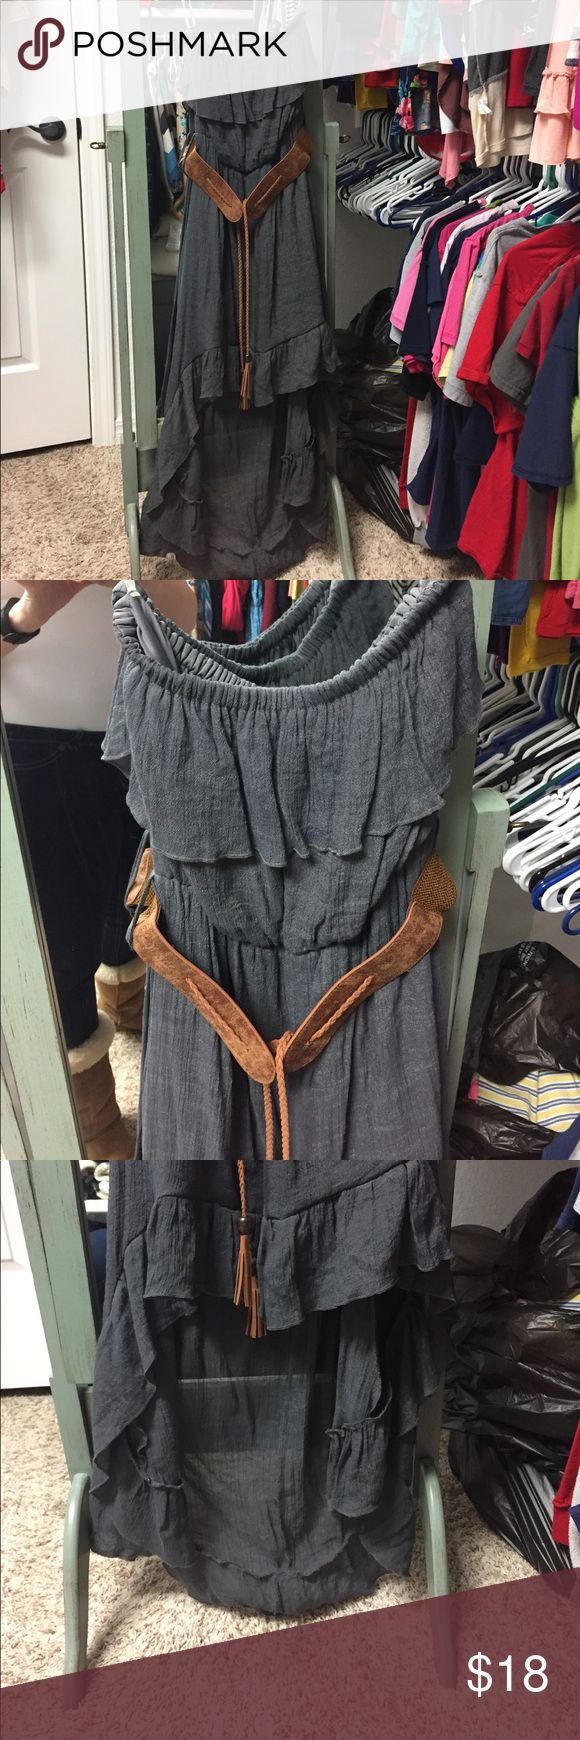 High low dress Women's boutique high low dress. Size medium. Super cute and perfect for spring/summer weather. Looks good dressed up with some wedges or down with some cowboy boots. I just love the versatility. Feel free to ask any questions. All offers considered Dresses High Low